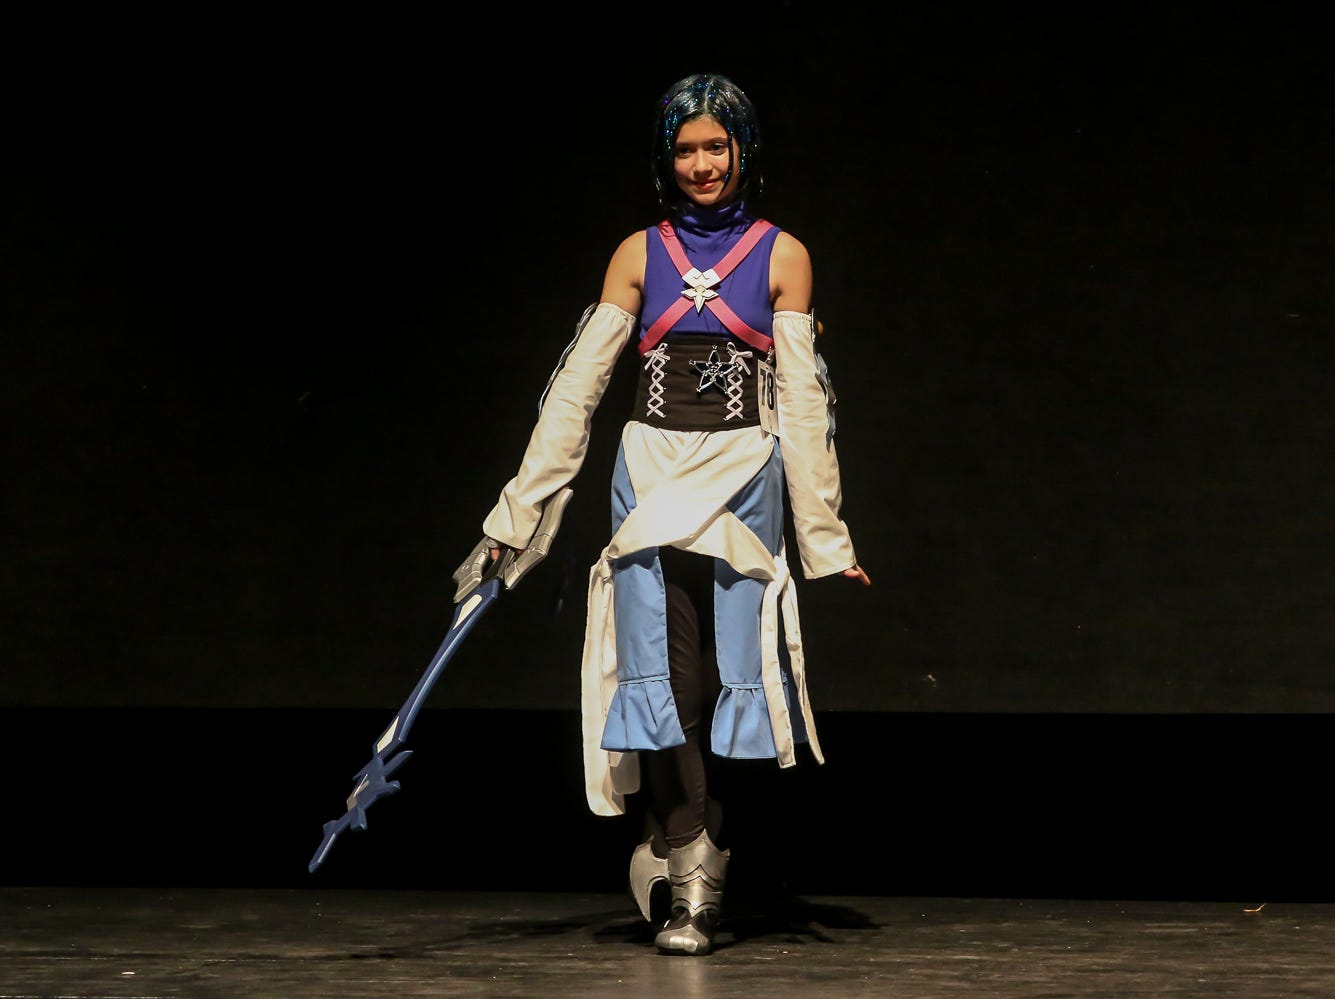 People compete in the Youth Division of the Pensacon cosplay contest presented by McGuire's Irish Pub at the Saenger Theatre on Saturday, February 23, 2019.